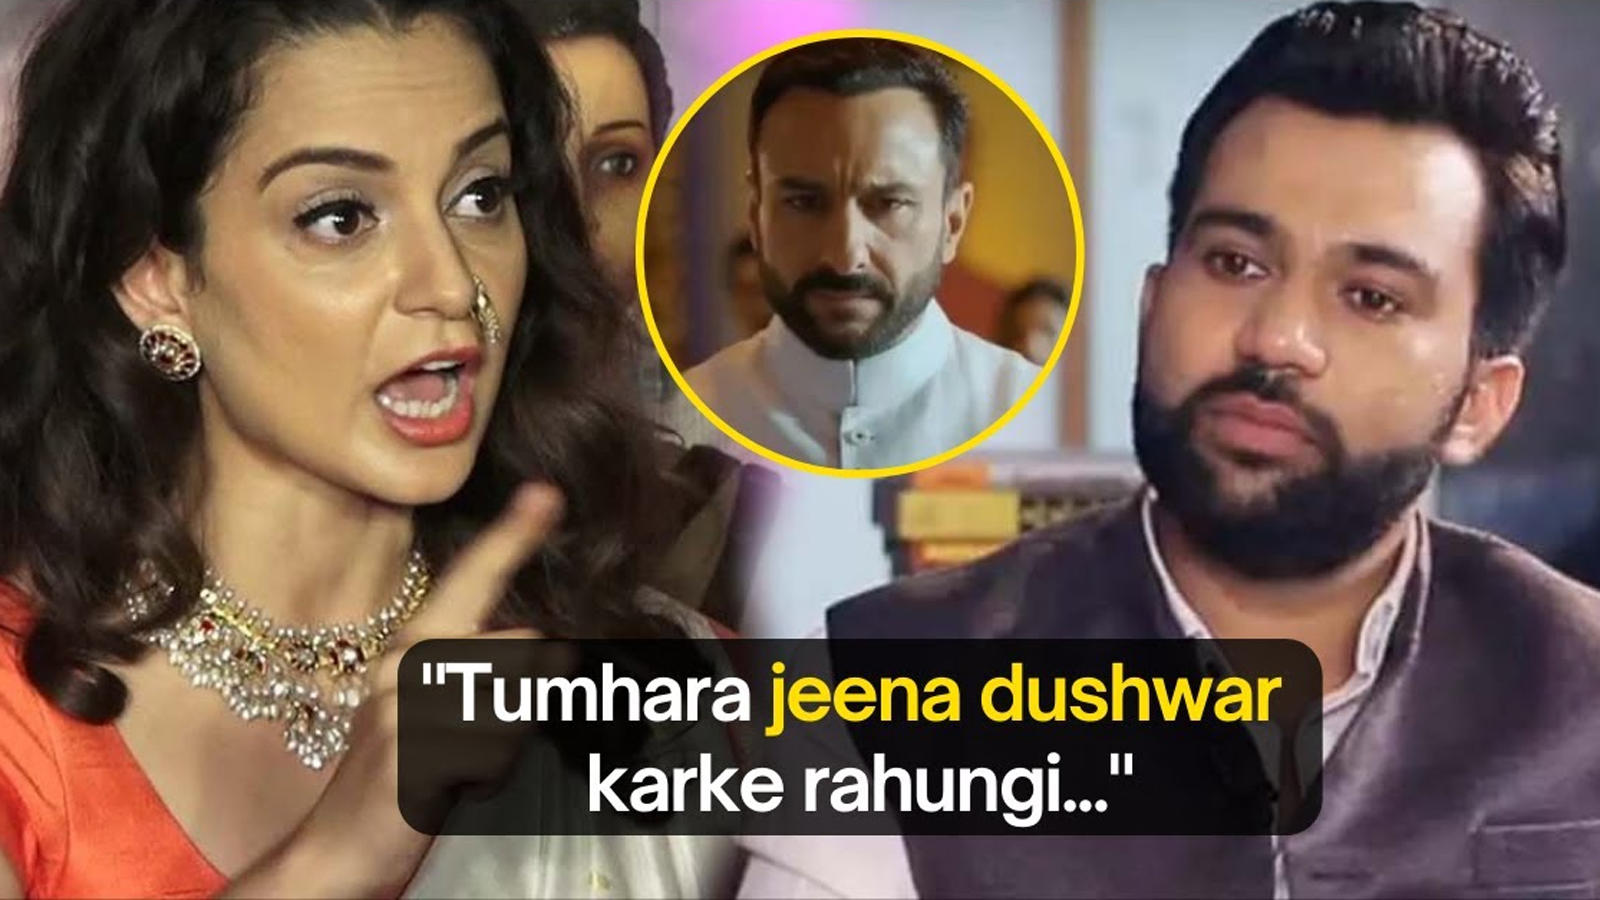 kangana-ranauts-twitter-account-temporarily-restricted-after-her-tweets-over-tandav-row-actor-reacts